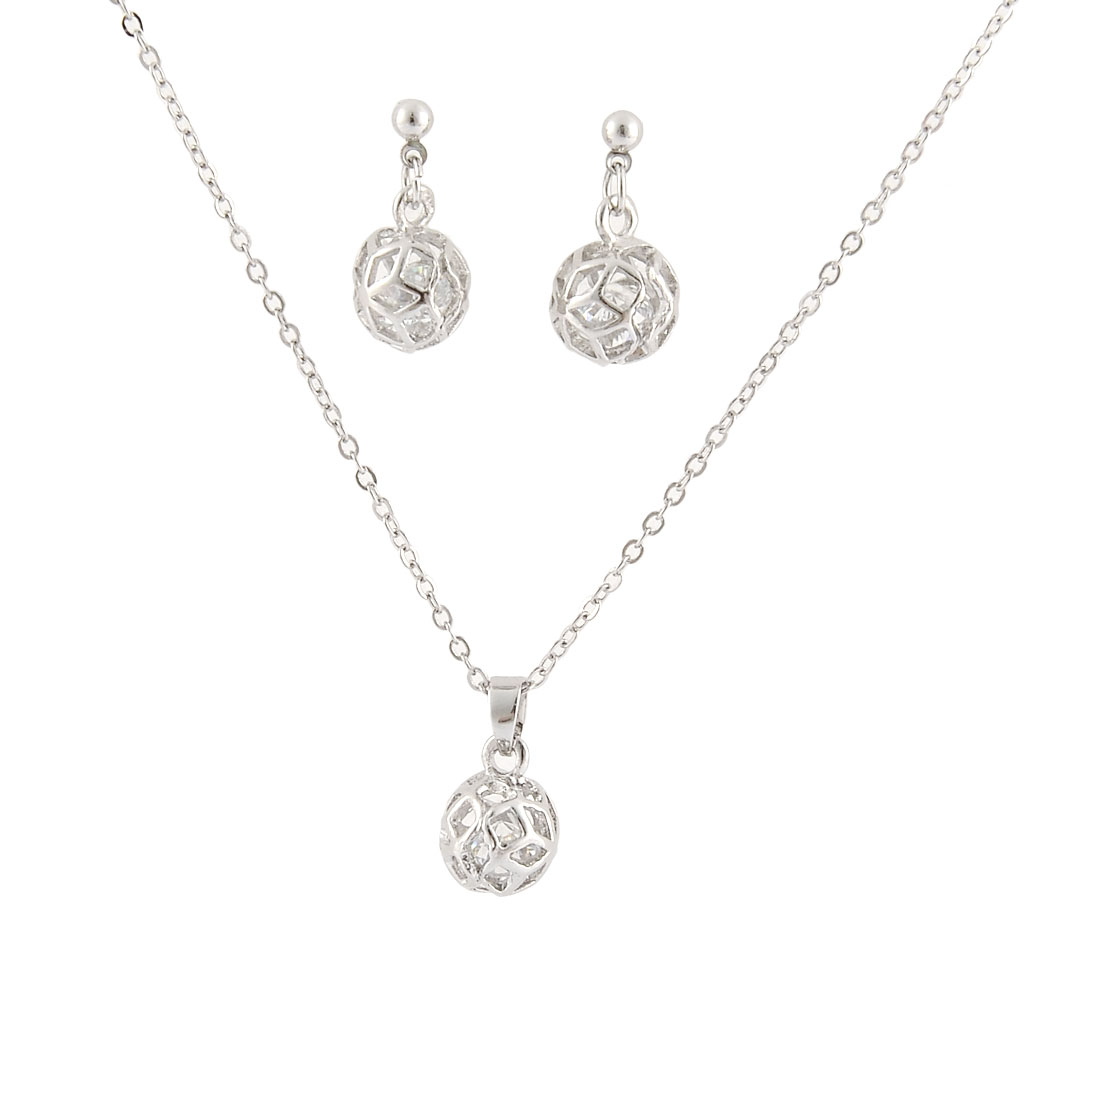 Lady Metal Ball Shaped Faux Crystal Decor Adjustable Chain Necklace Earrings Set